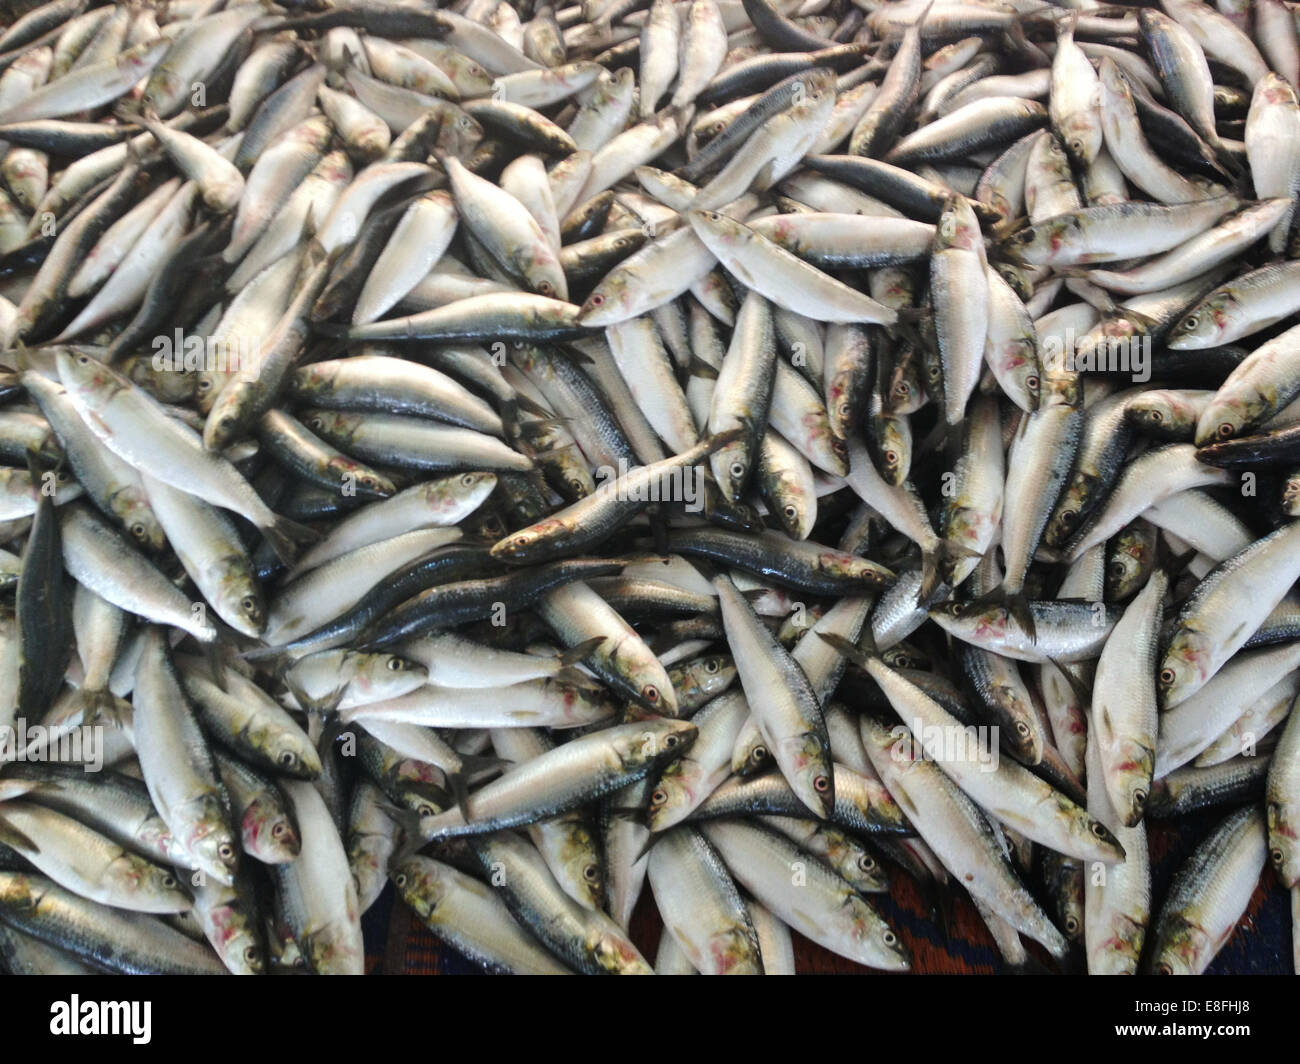 Oman, Muscat, Sardines for sale at market - Stock Image